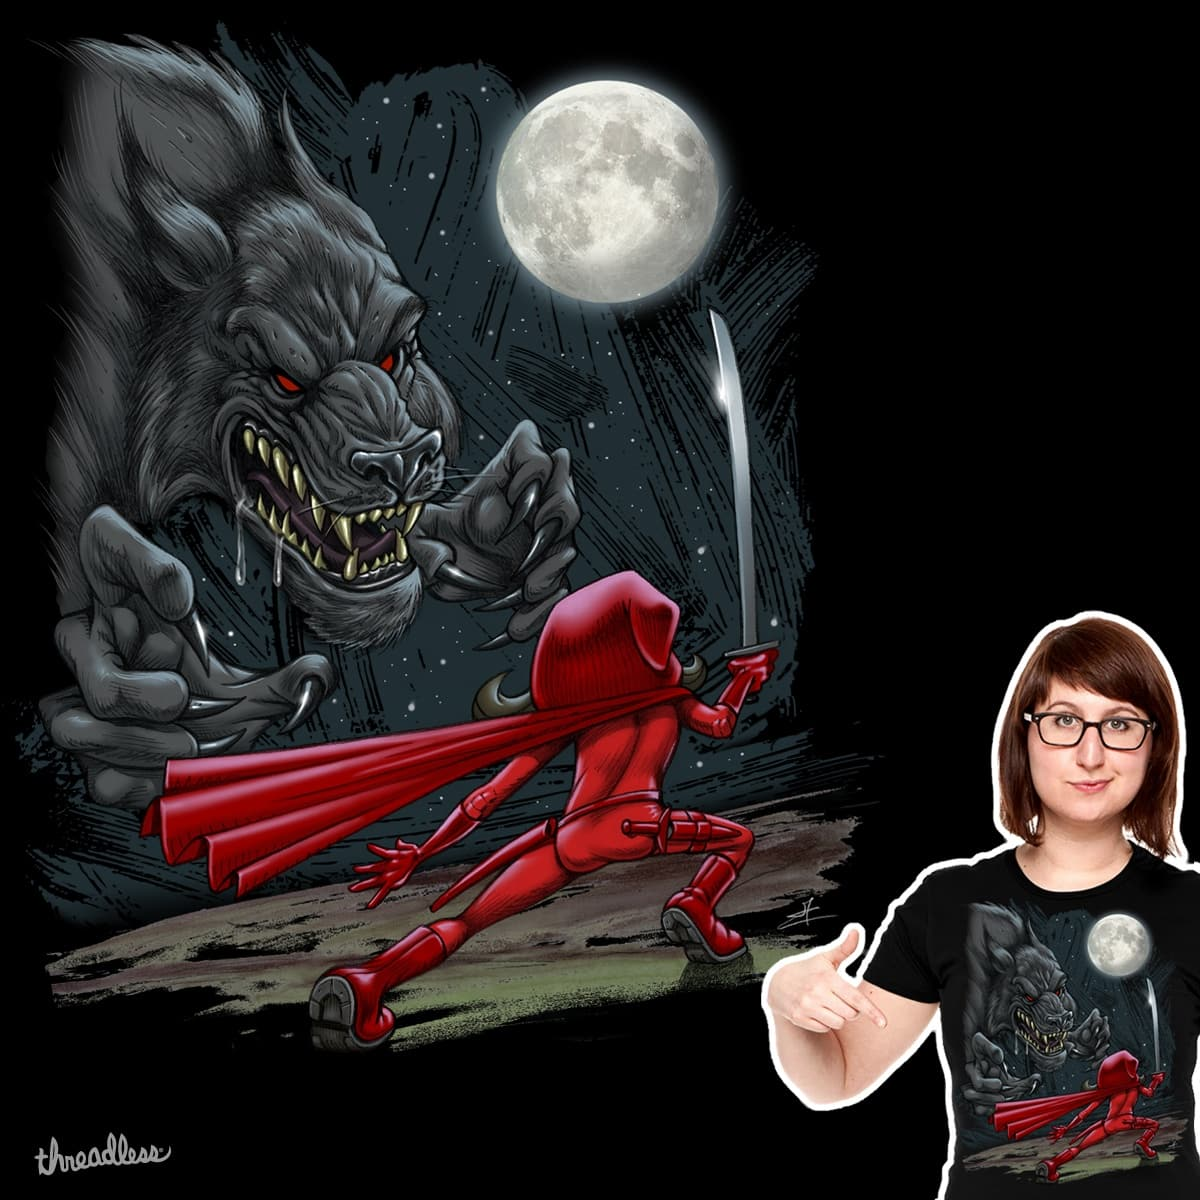 Lil' Red in the Wrong Hood 2 by JChuppe on Threadless